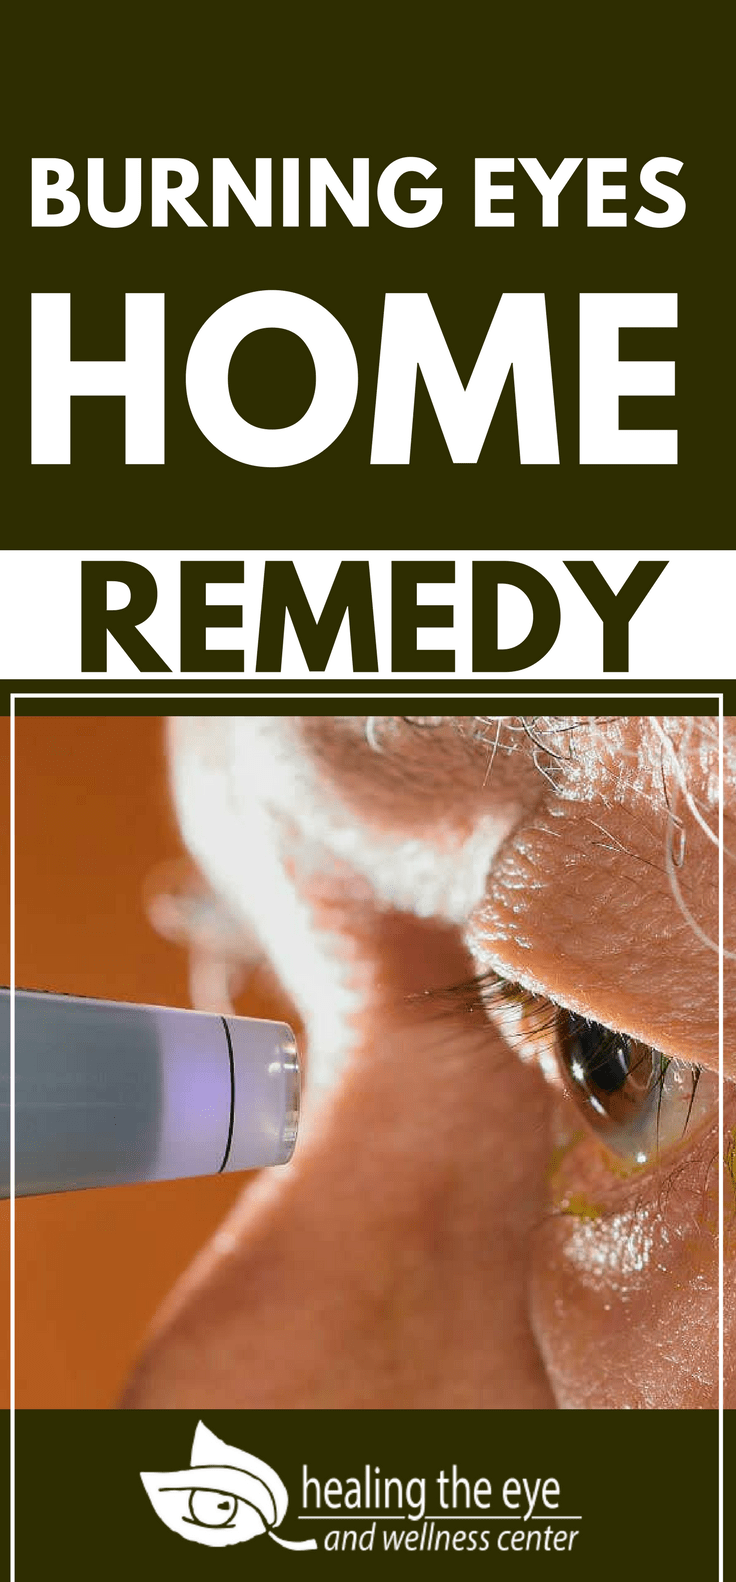 Treatment of glaucoma folk remedies and healers recipes 22